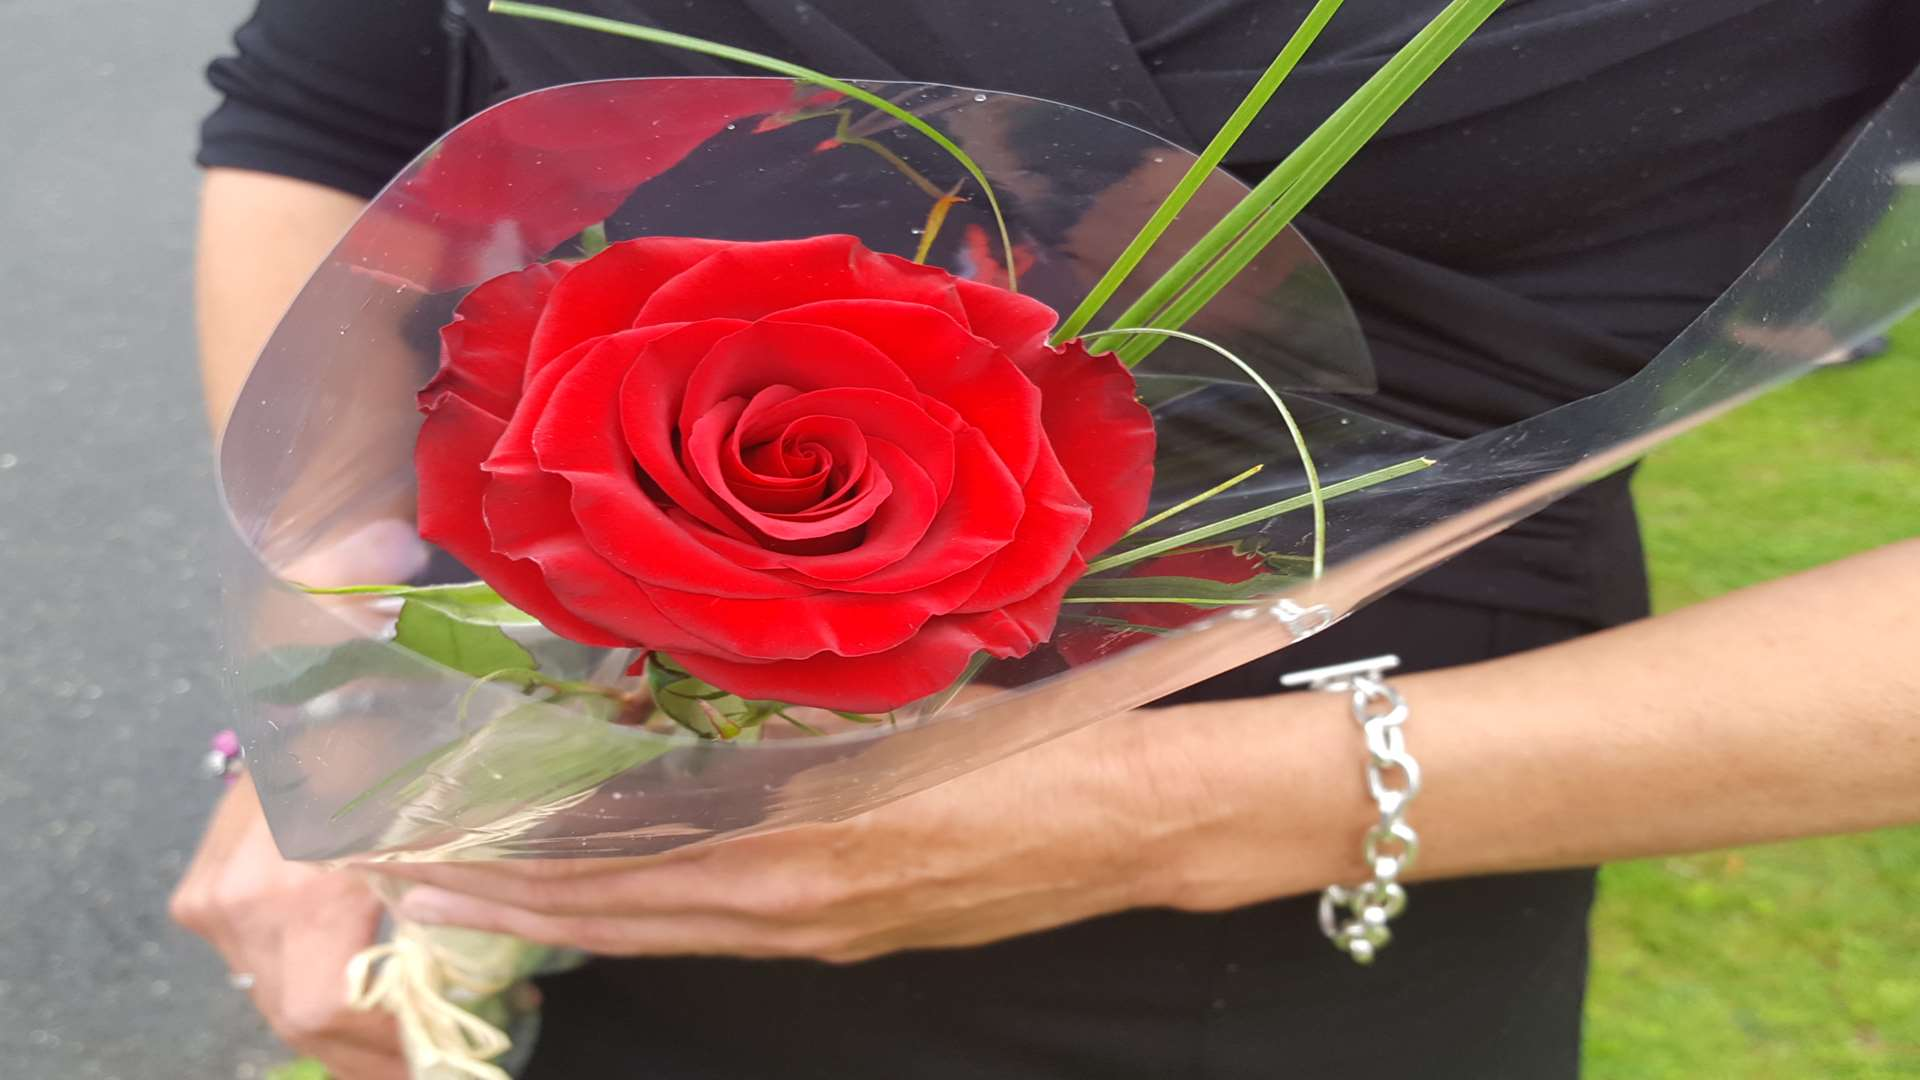 A rose is held as tribute to tragic Taiyah